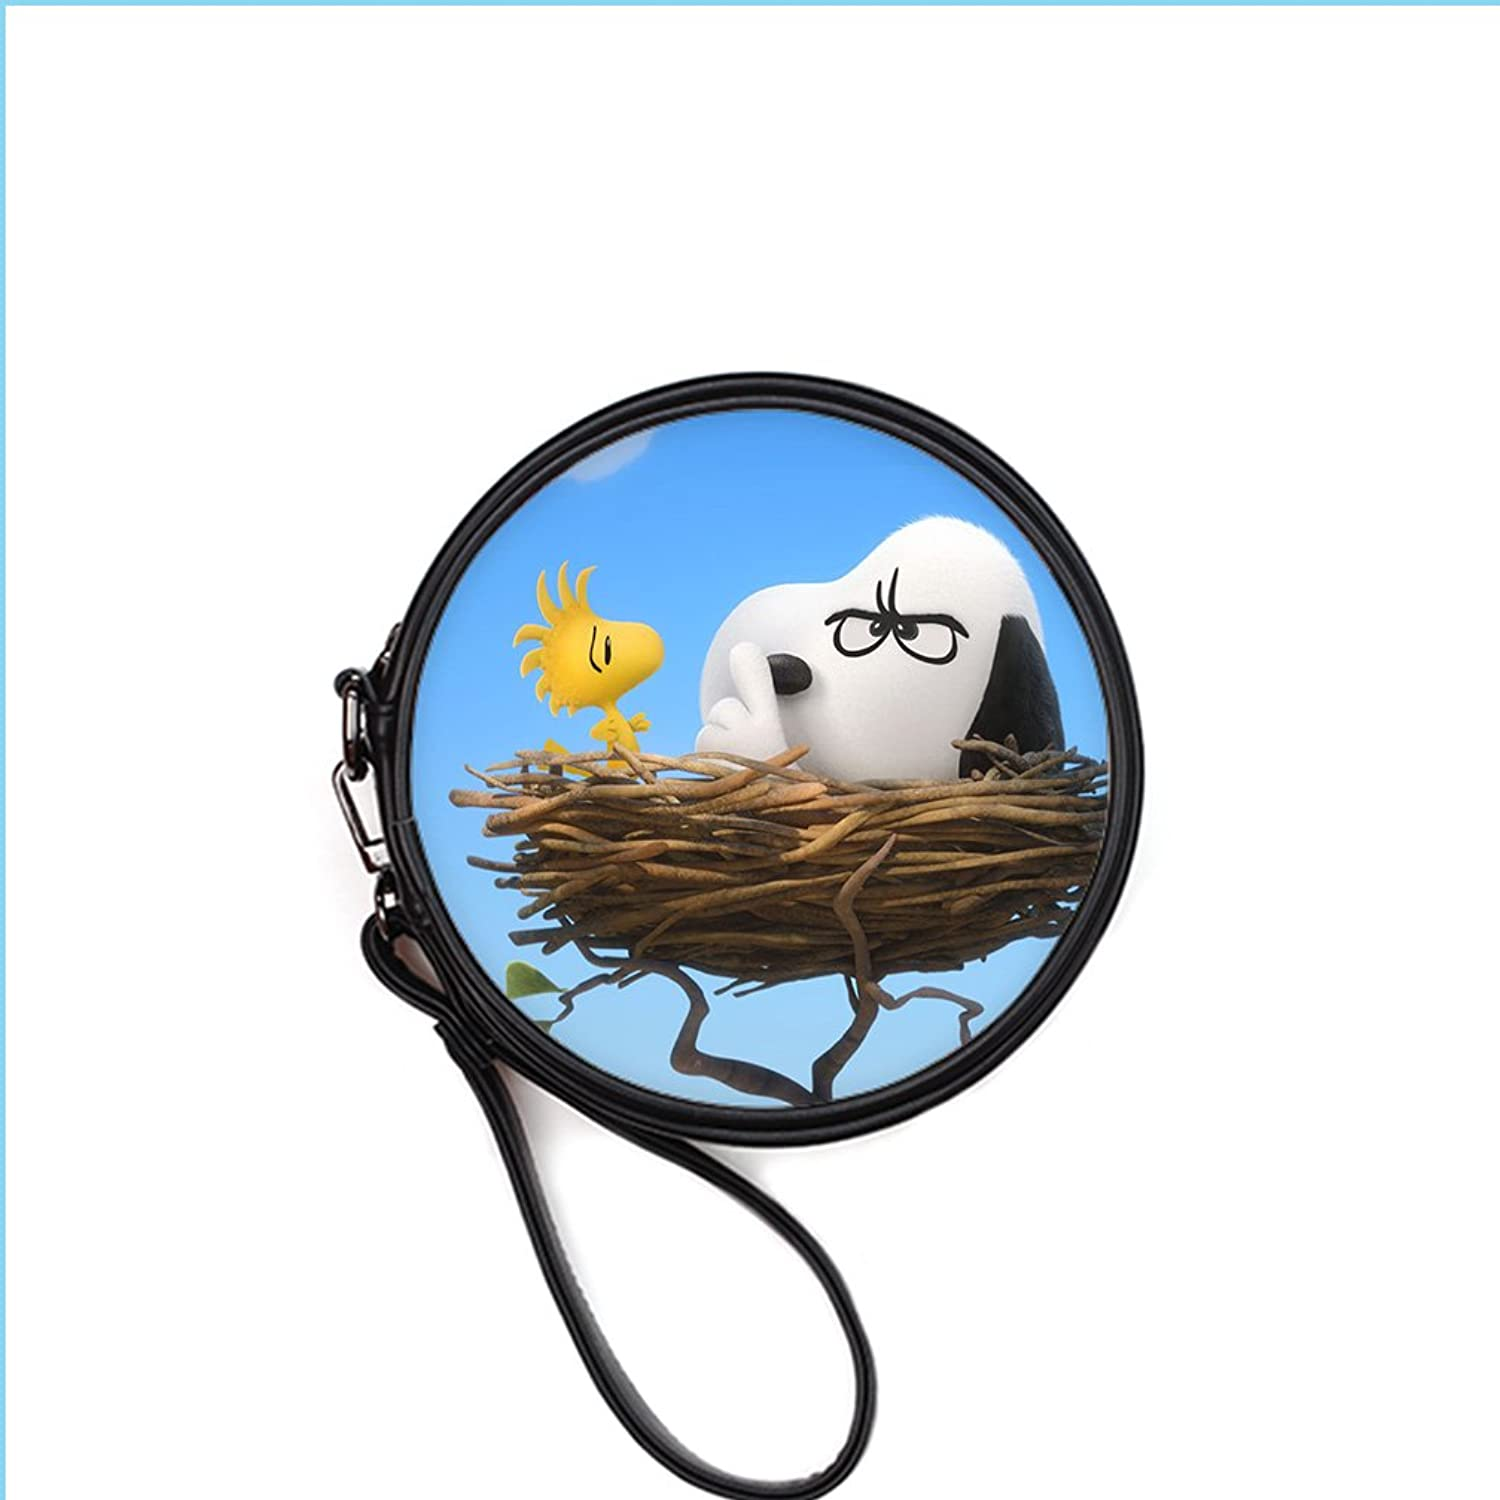 Freehome Leisure Round Snoopy Fashion Lady Makeup Bags